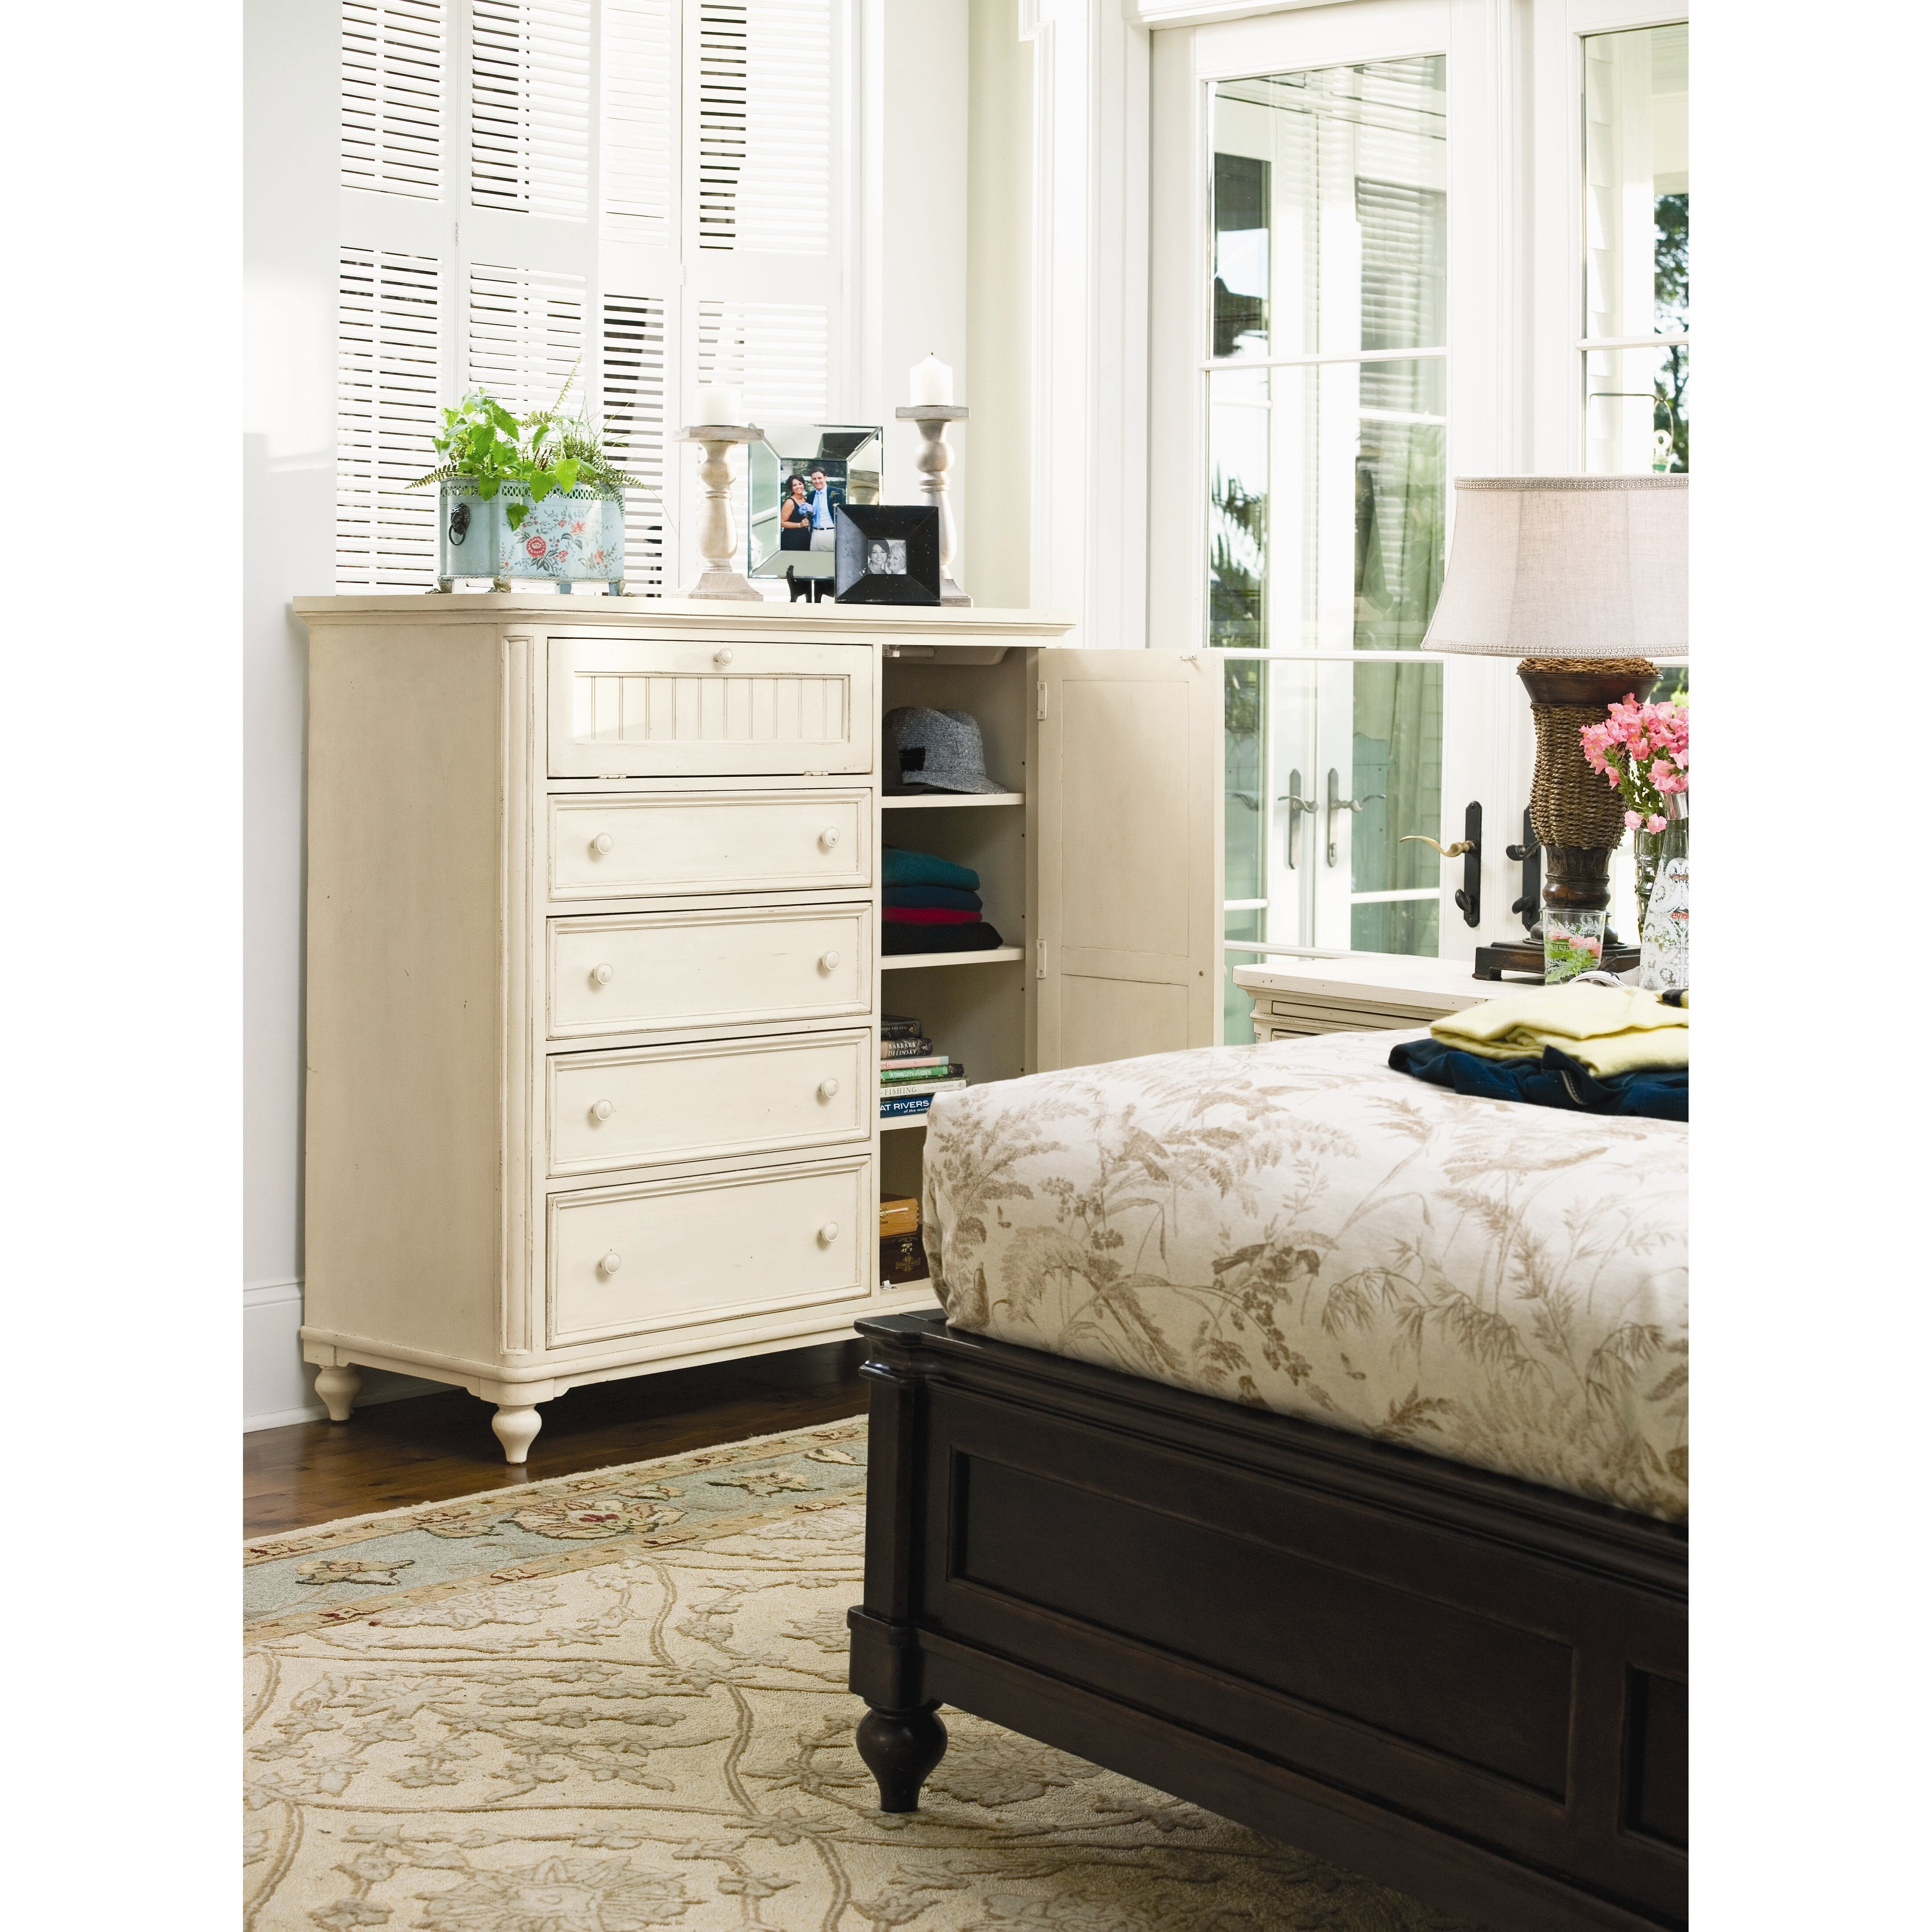 Paula Deen Bedroom Furniture Collection Steel Magnolia Paula Deen Home Steel Magnolia 4 Drawer Gentlemans Chest